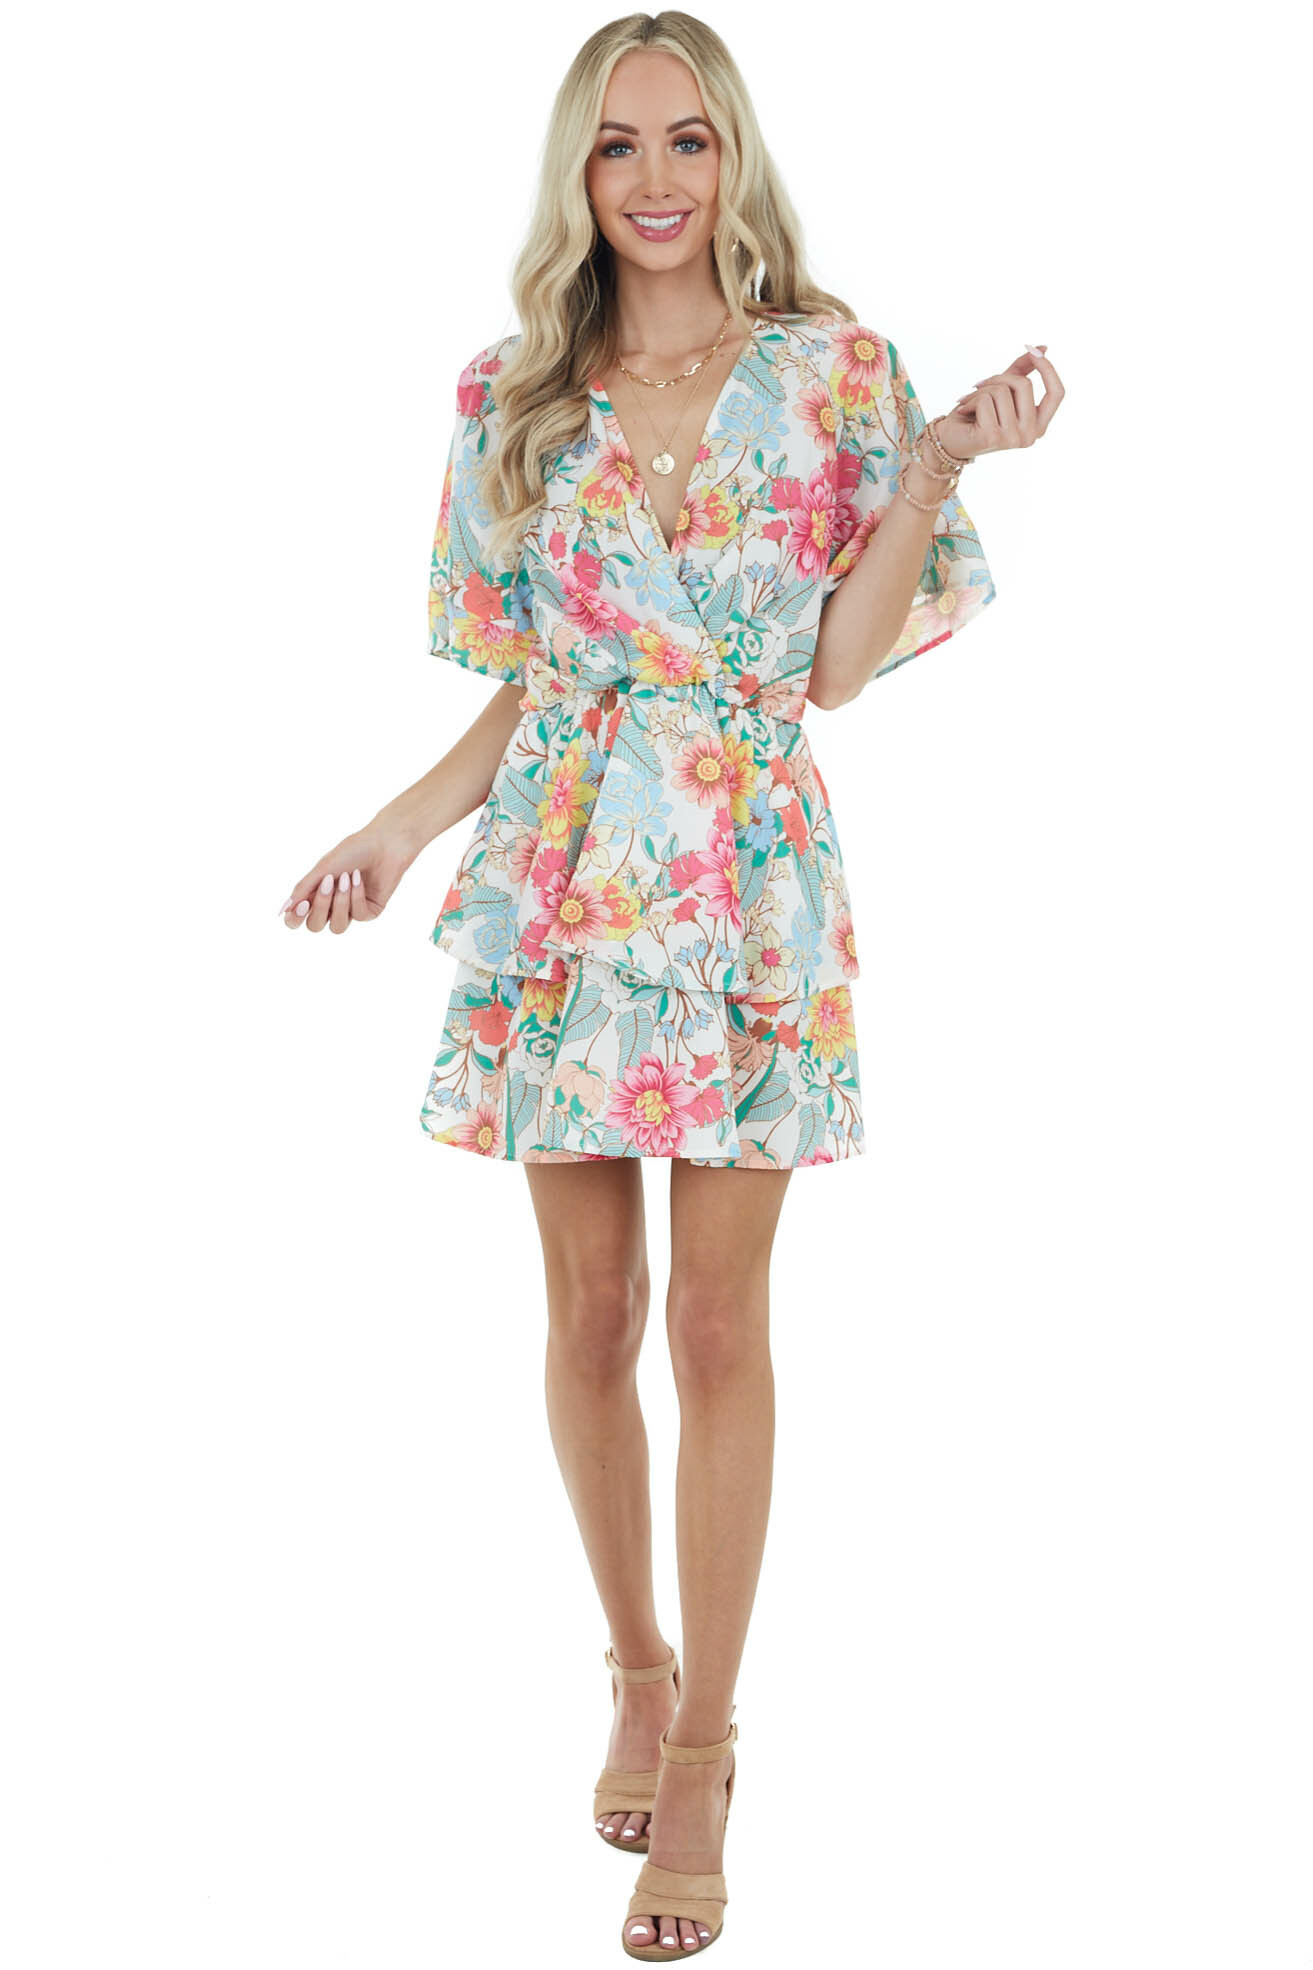 Cream Floral Print Surplice Short Dress with Tiered Ruffles